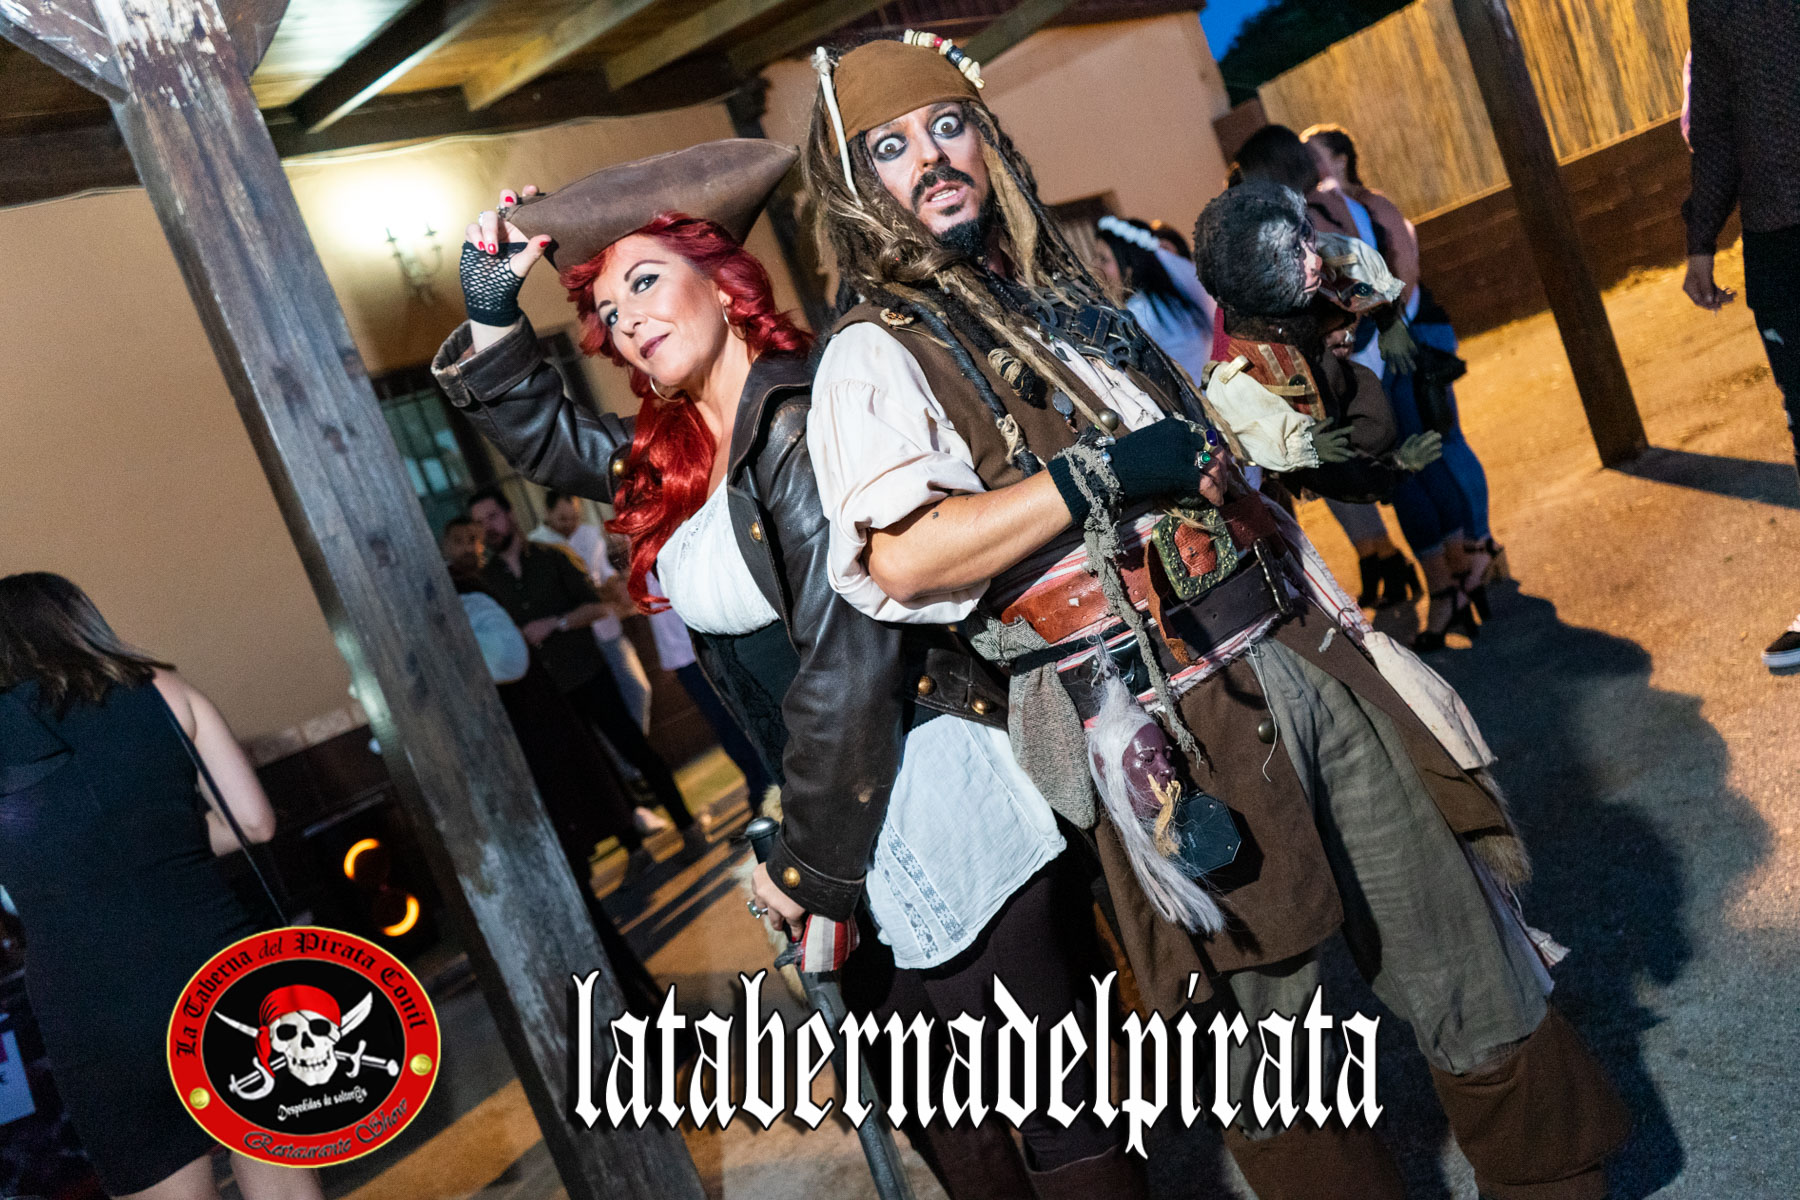 la taberna del pirata performances